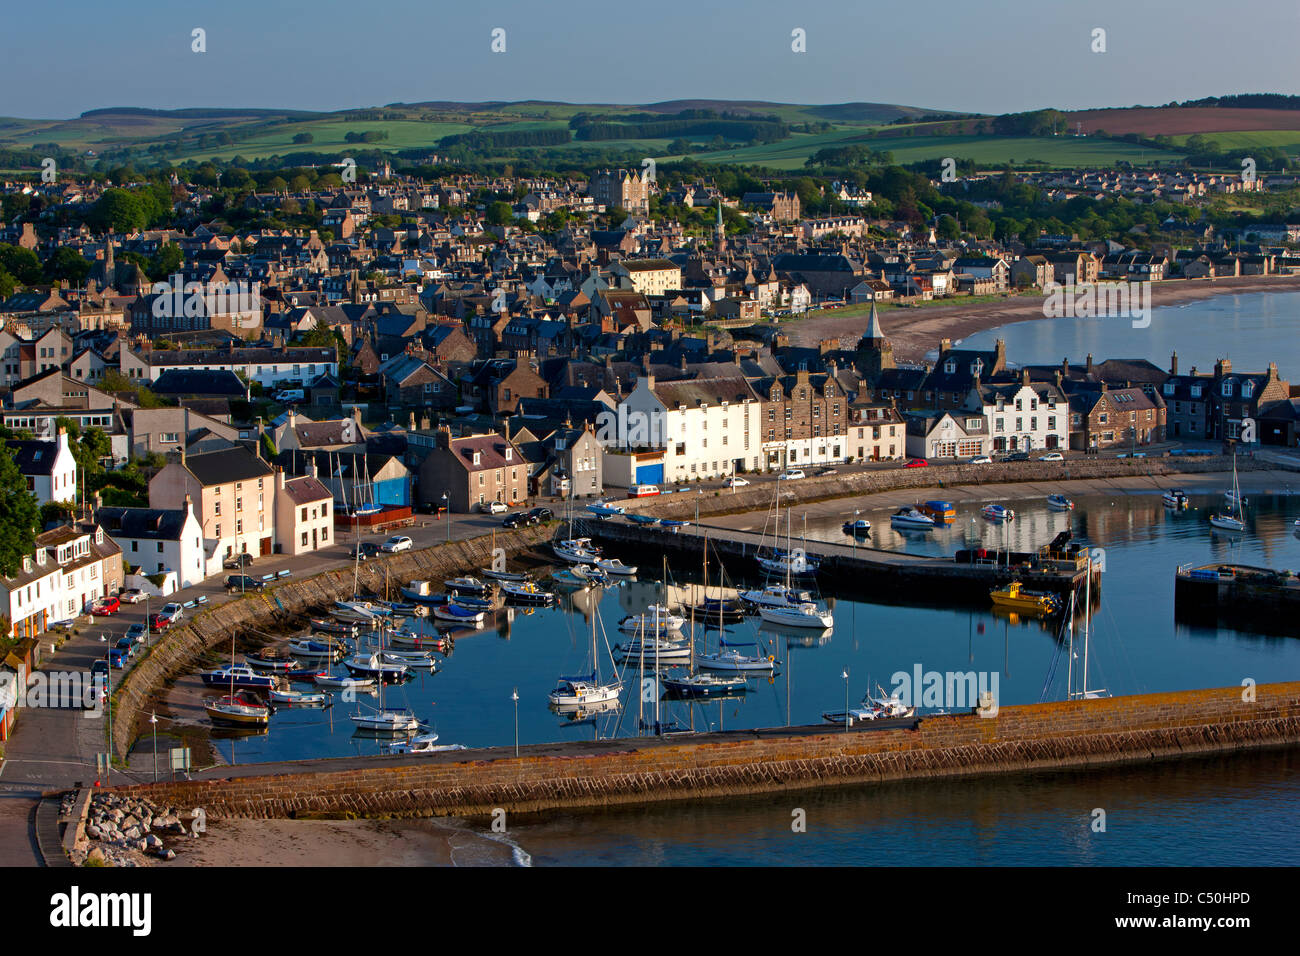 Looking down upon Stonehaven village and harbour, Aberdeenshire, Scotland - Stock Image